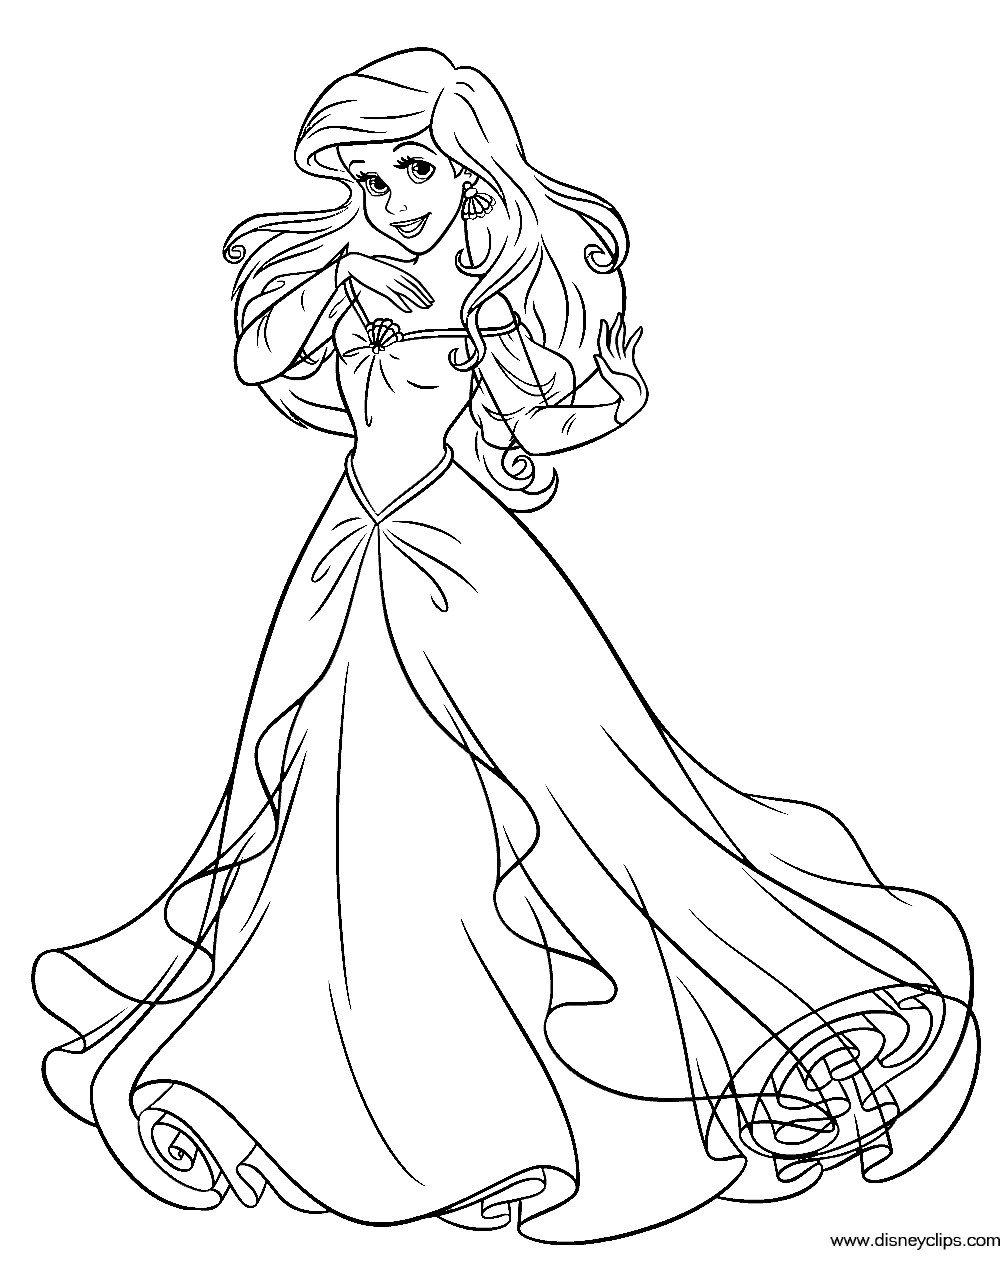 ariel colour in disney ariel coloring pages at getcoloringscom free ariel colour in